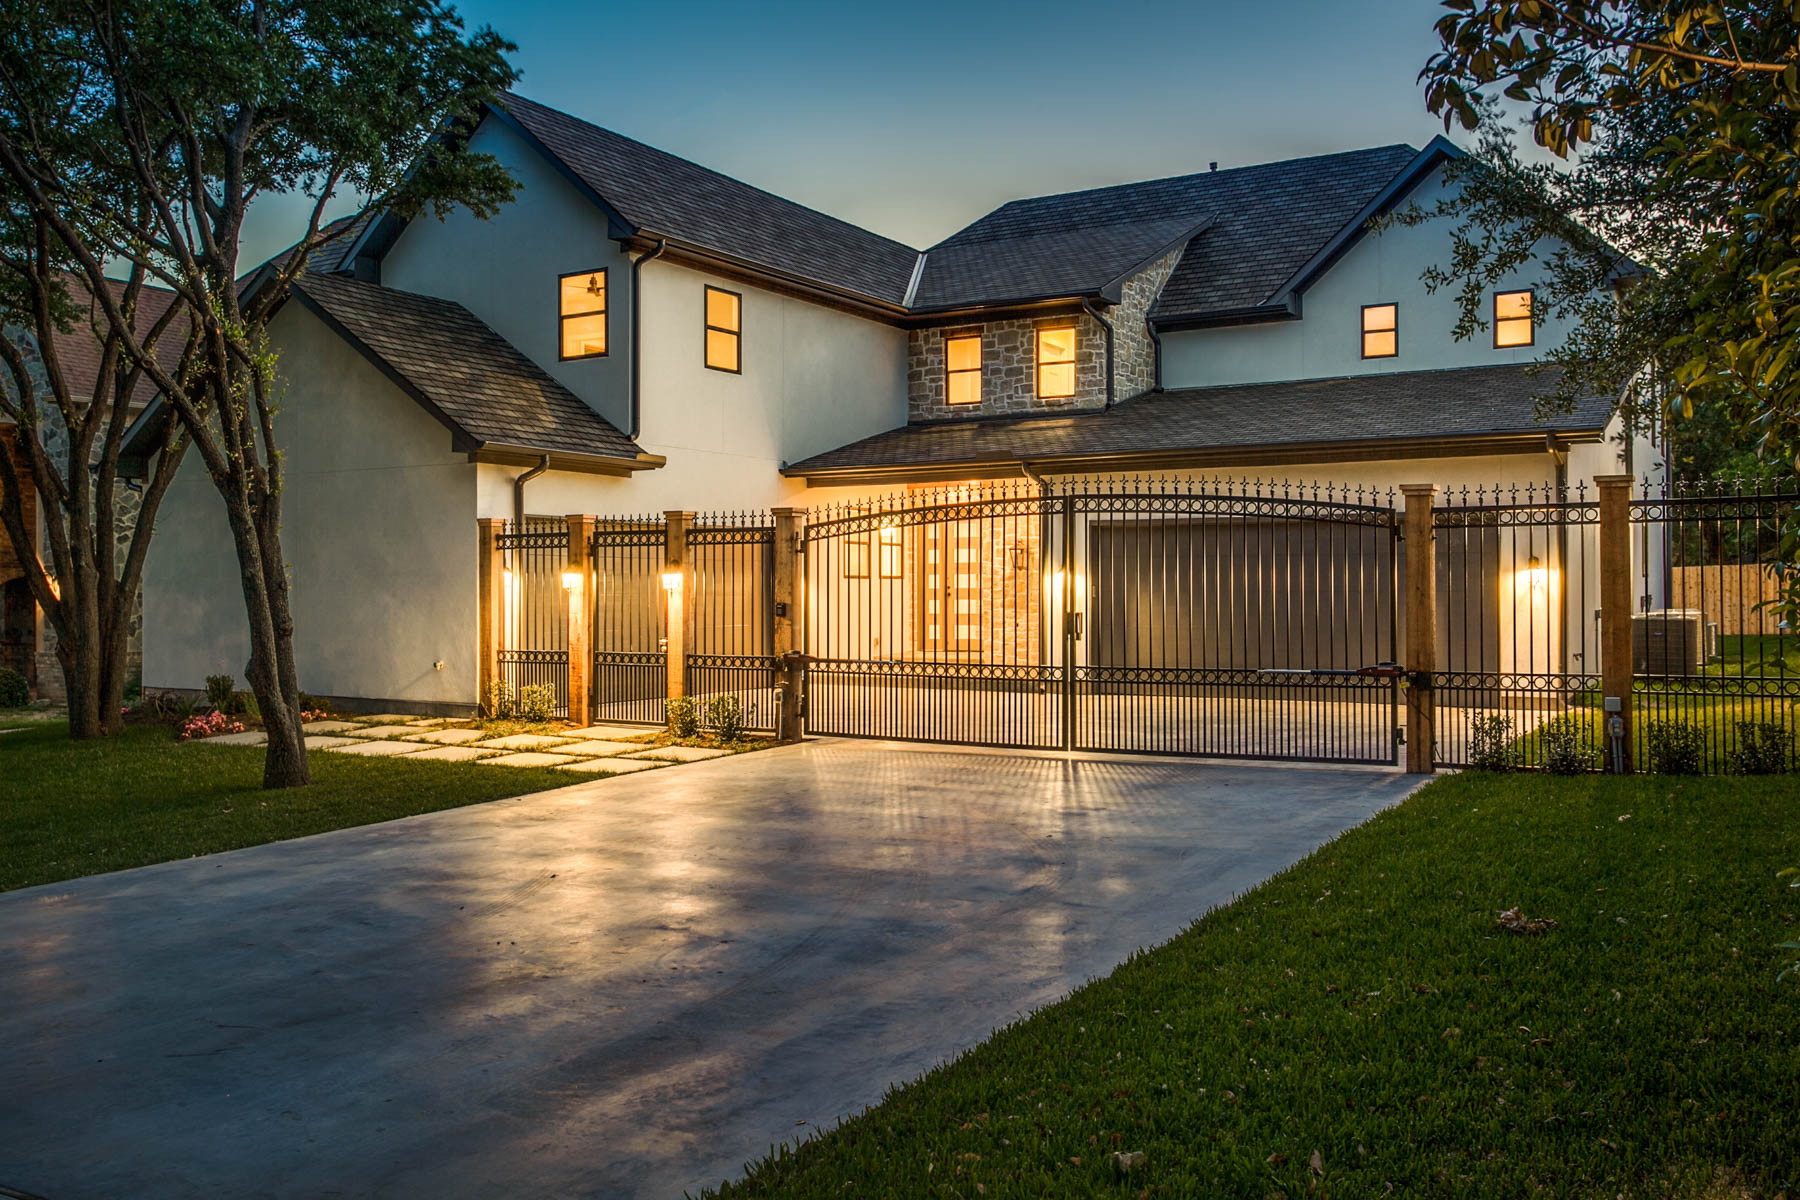 Single Family Home for Sale at Stunning Midway Hollow Home 9415 Thornberry Ln Dallas, Texas, 75220 United States